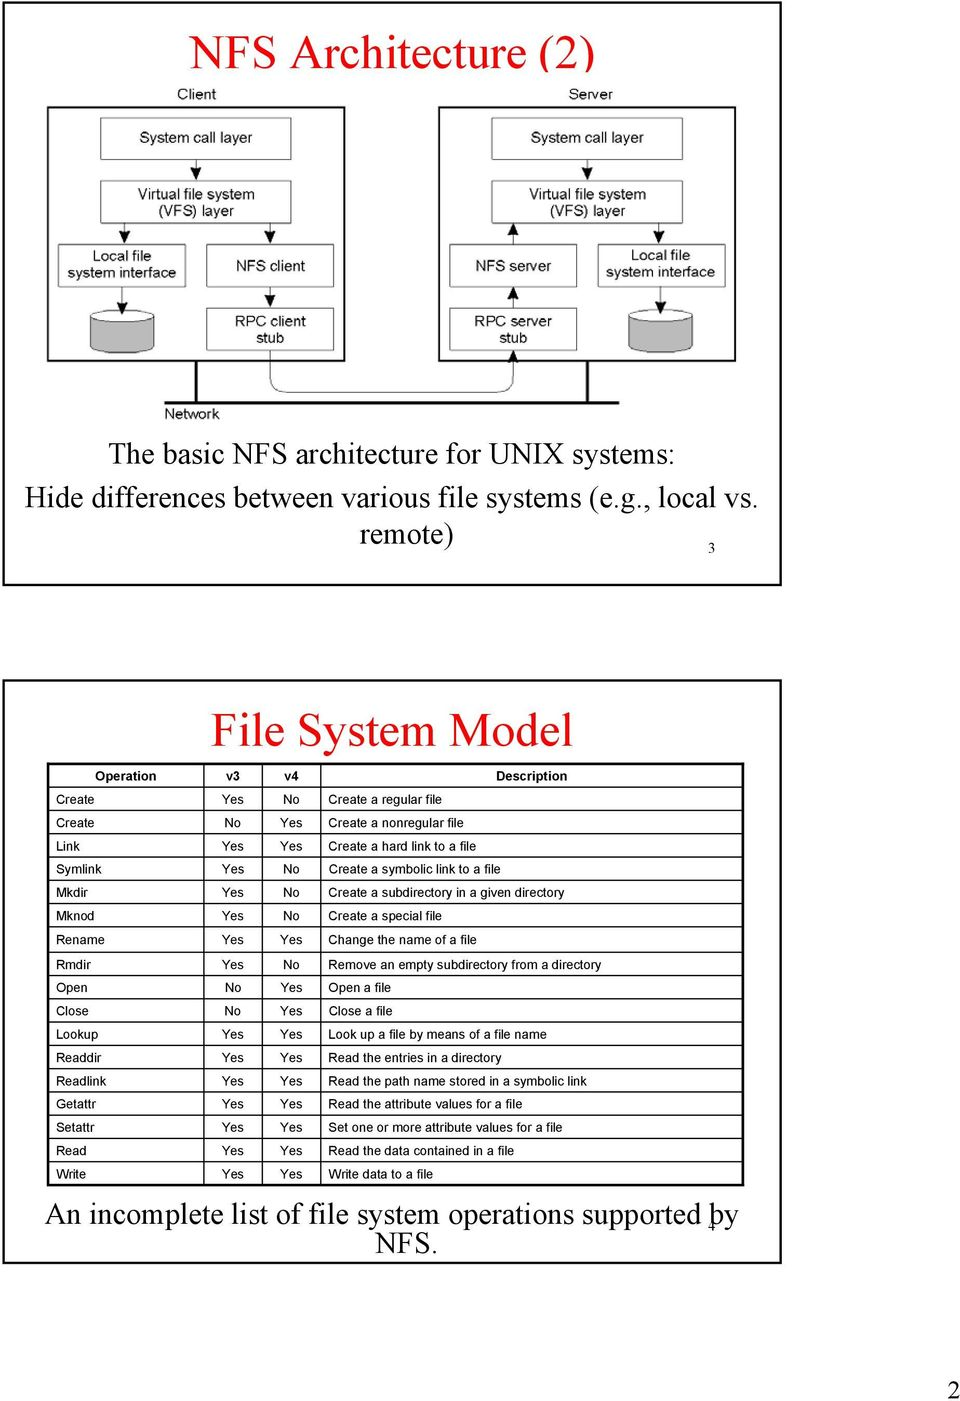 Distributed File Systems  NFS Architecture (1) - PDF